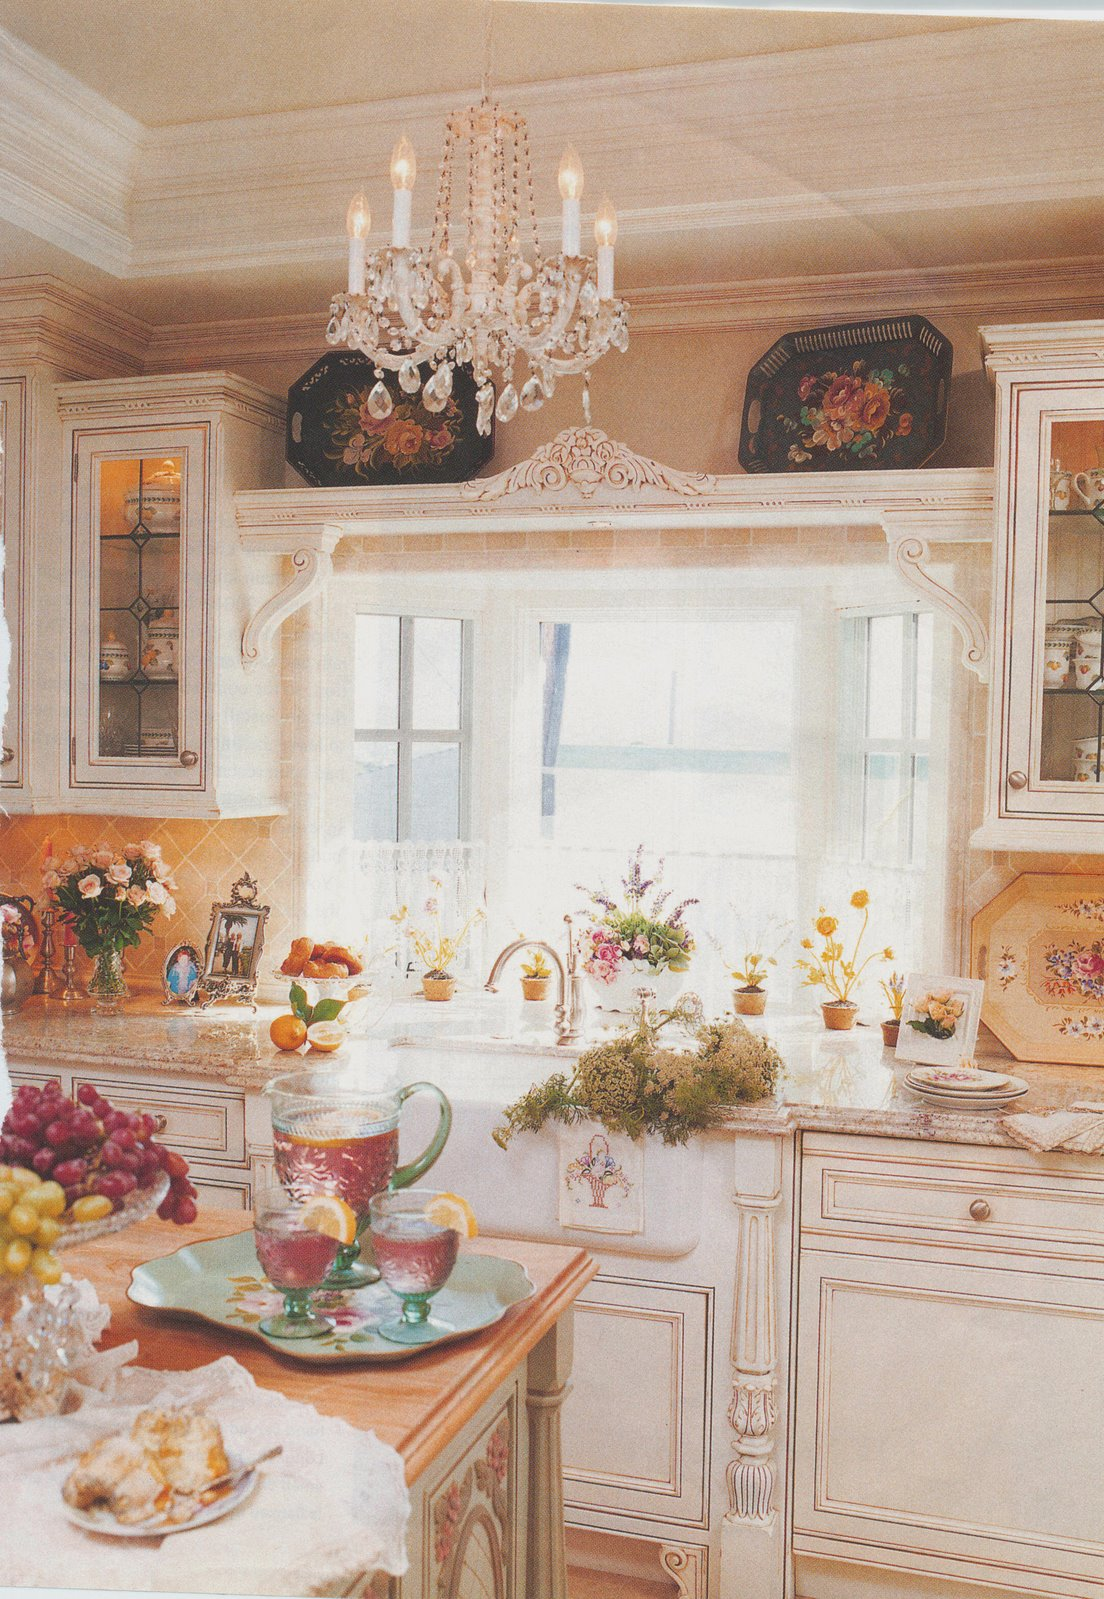 Romantic Homes Decorating: Maison Decor: Cottage Kitchen Decorated With Tole